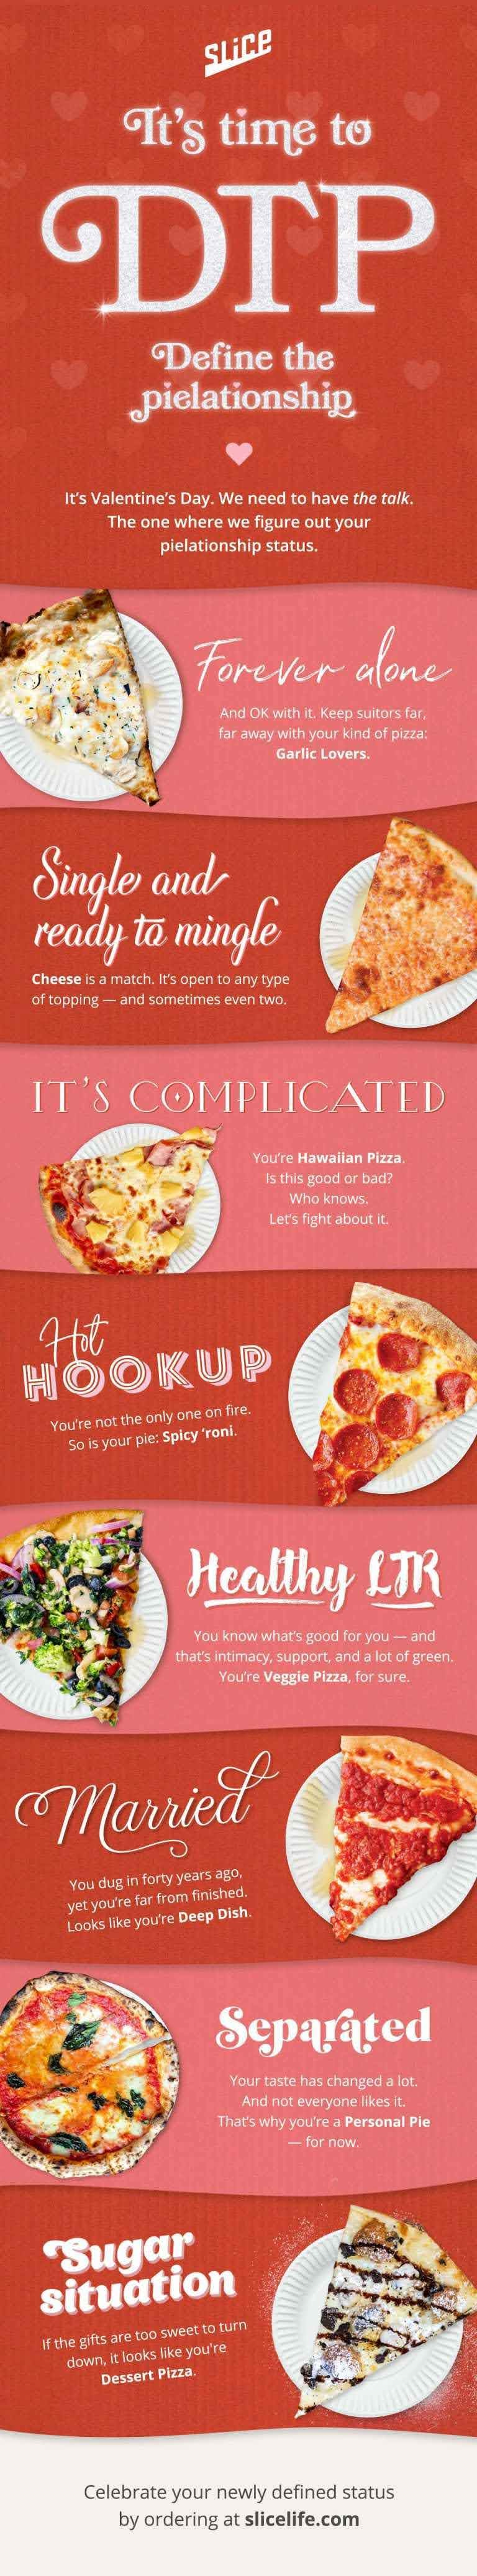 Define the Pielationship This Valentine's Day #infographic